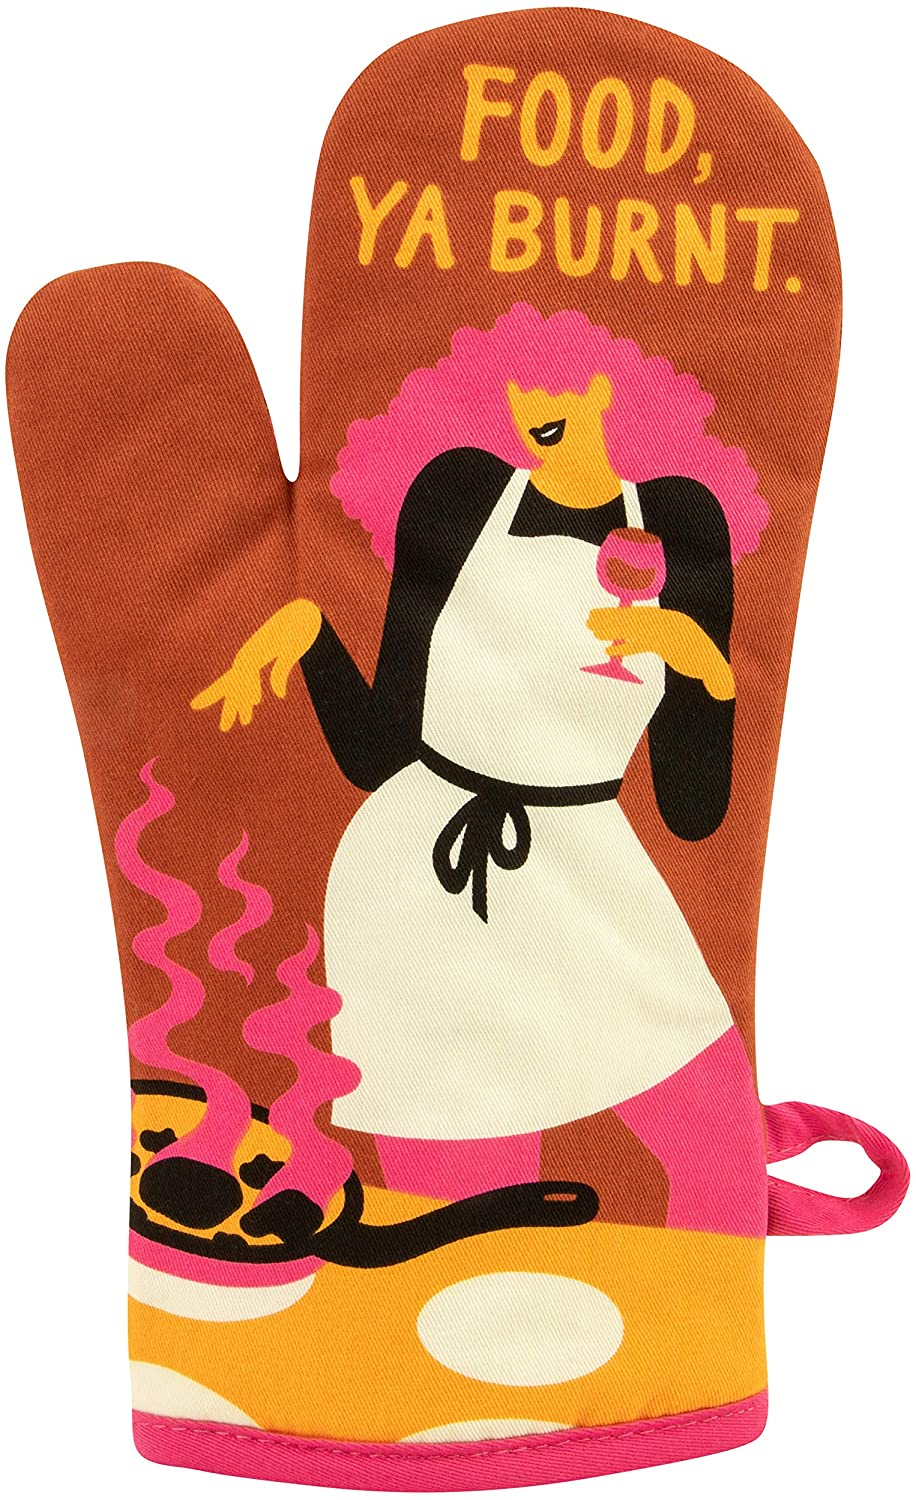 kitchen-gifts-oven-mitt